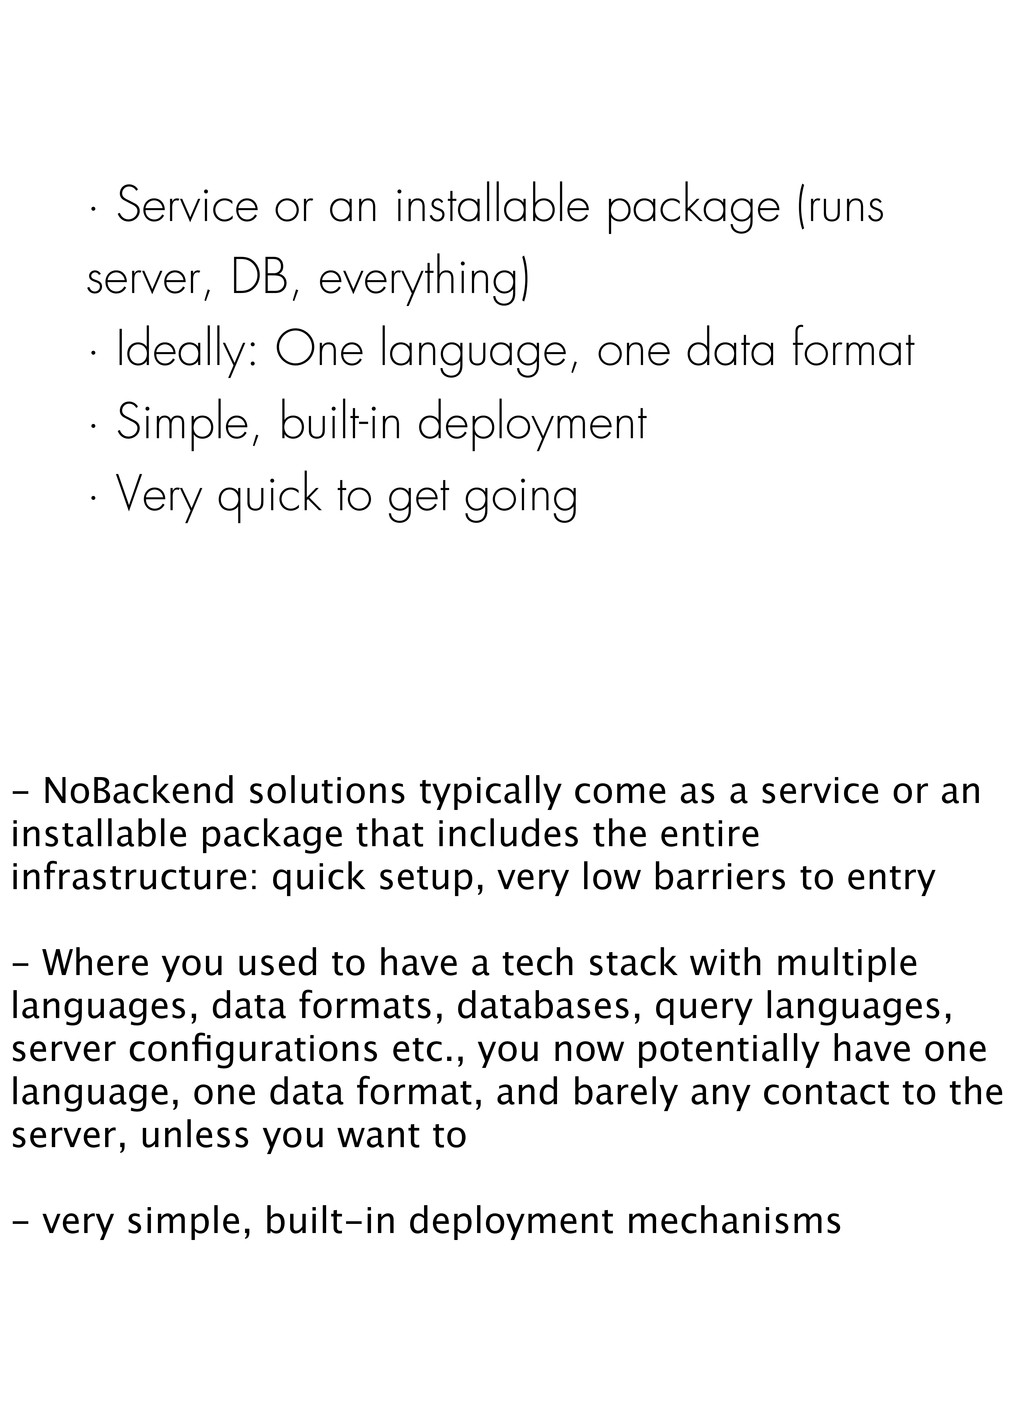 · Service or an installable package (runs serve...